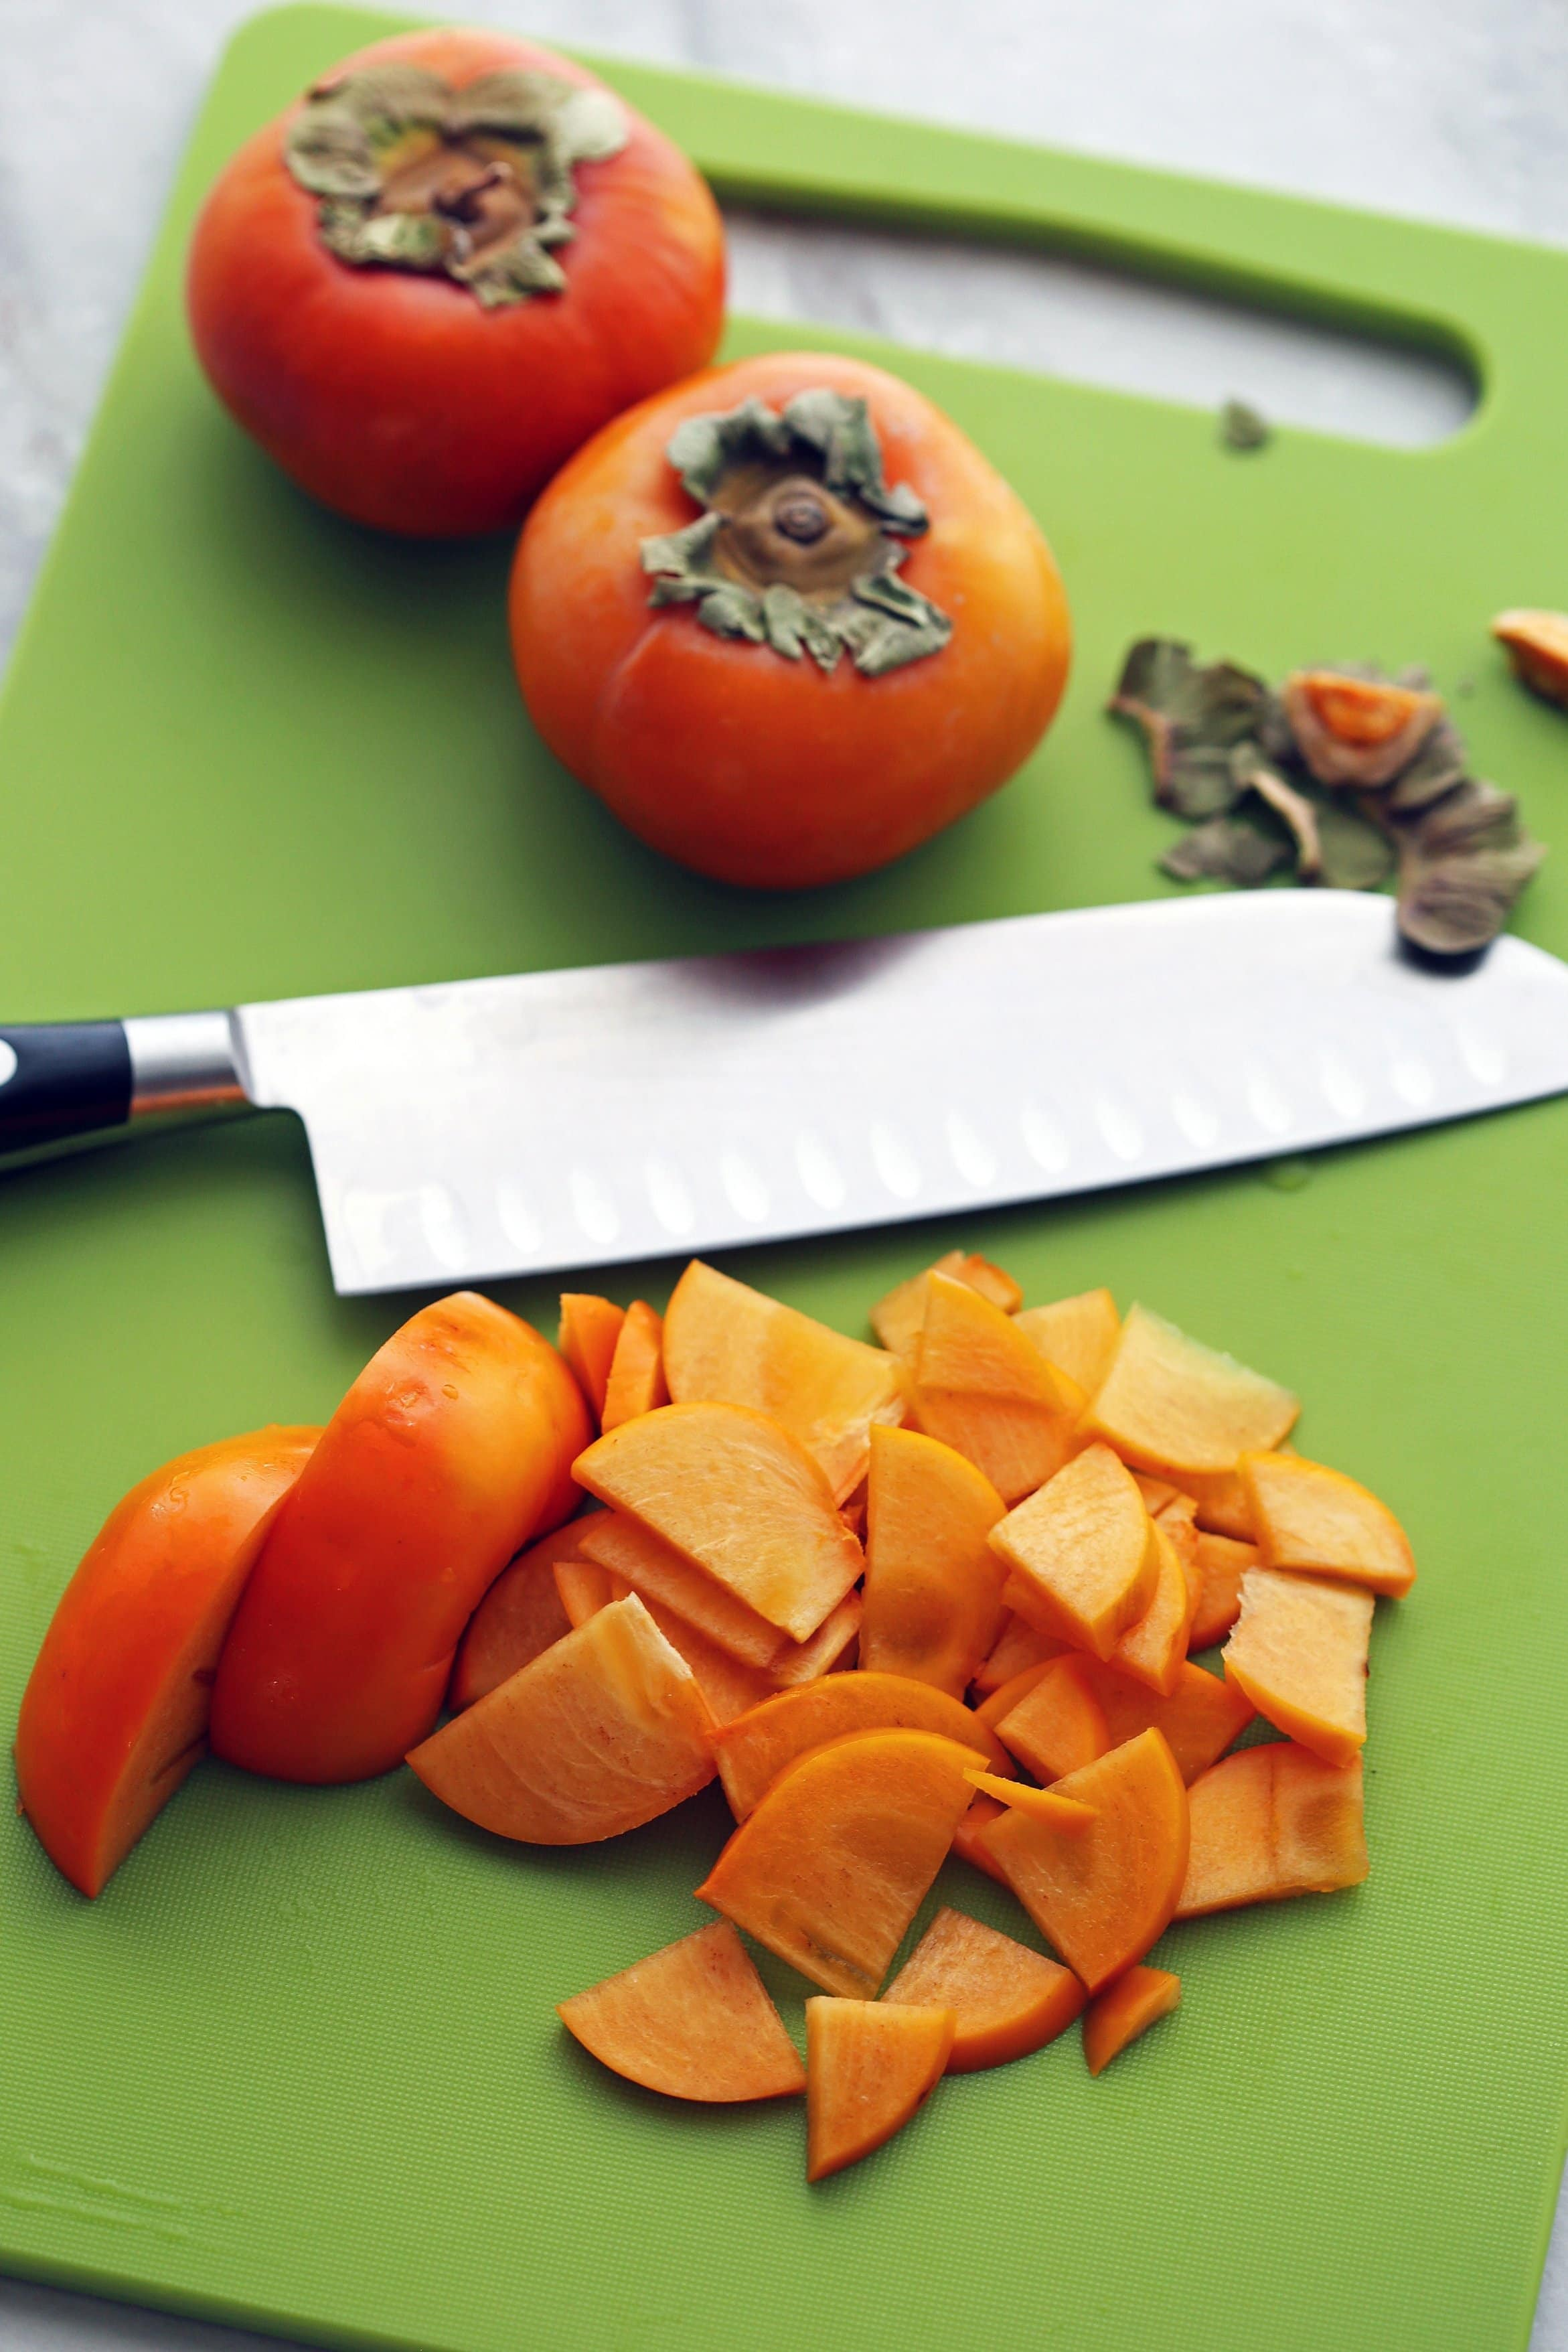 Sliced and whole persimmon fruit and a knife on a green cutting board.